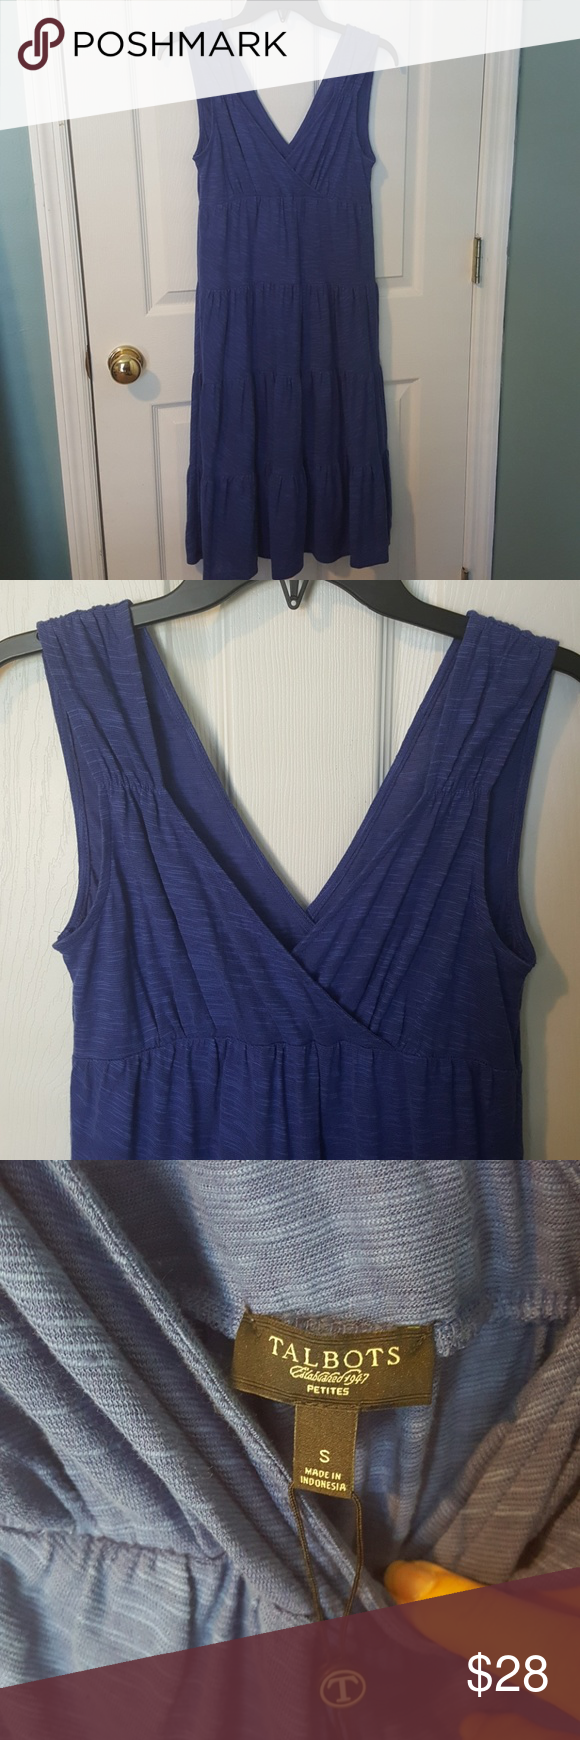 """Talbots Summer Dress This dress is a must have for your summer wardrobe! 51% cotton/49% linen. Very soft, great with a cute sandal or even flip flops! Size Small Petite. Measures 41"""" shoulder to hem. Talbots Dresses"""